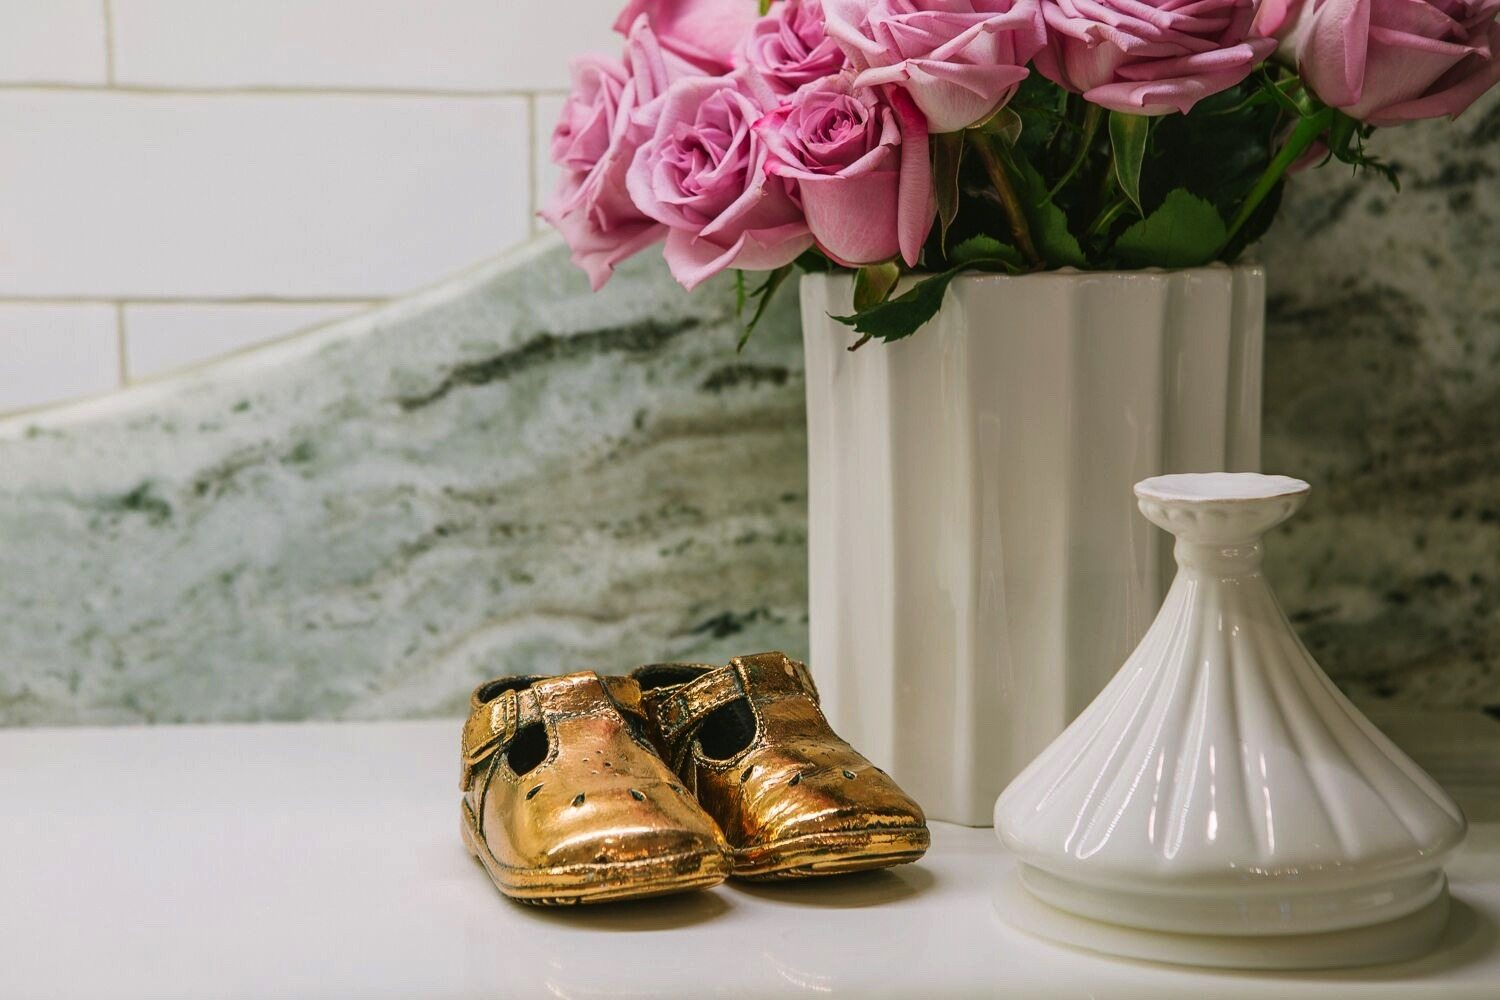 I cherish my daughter Liza's bronze-dipped baby shoes